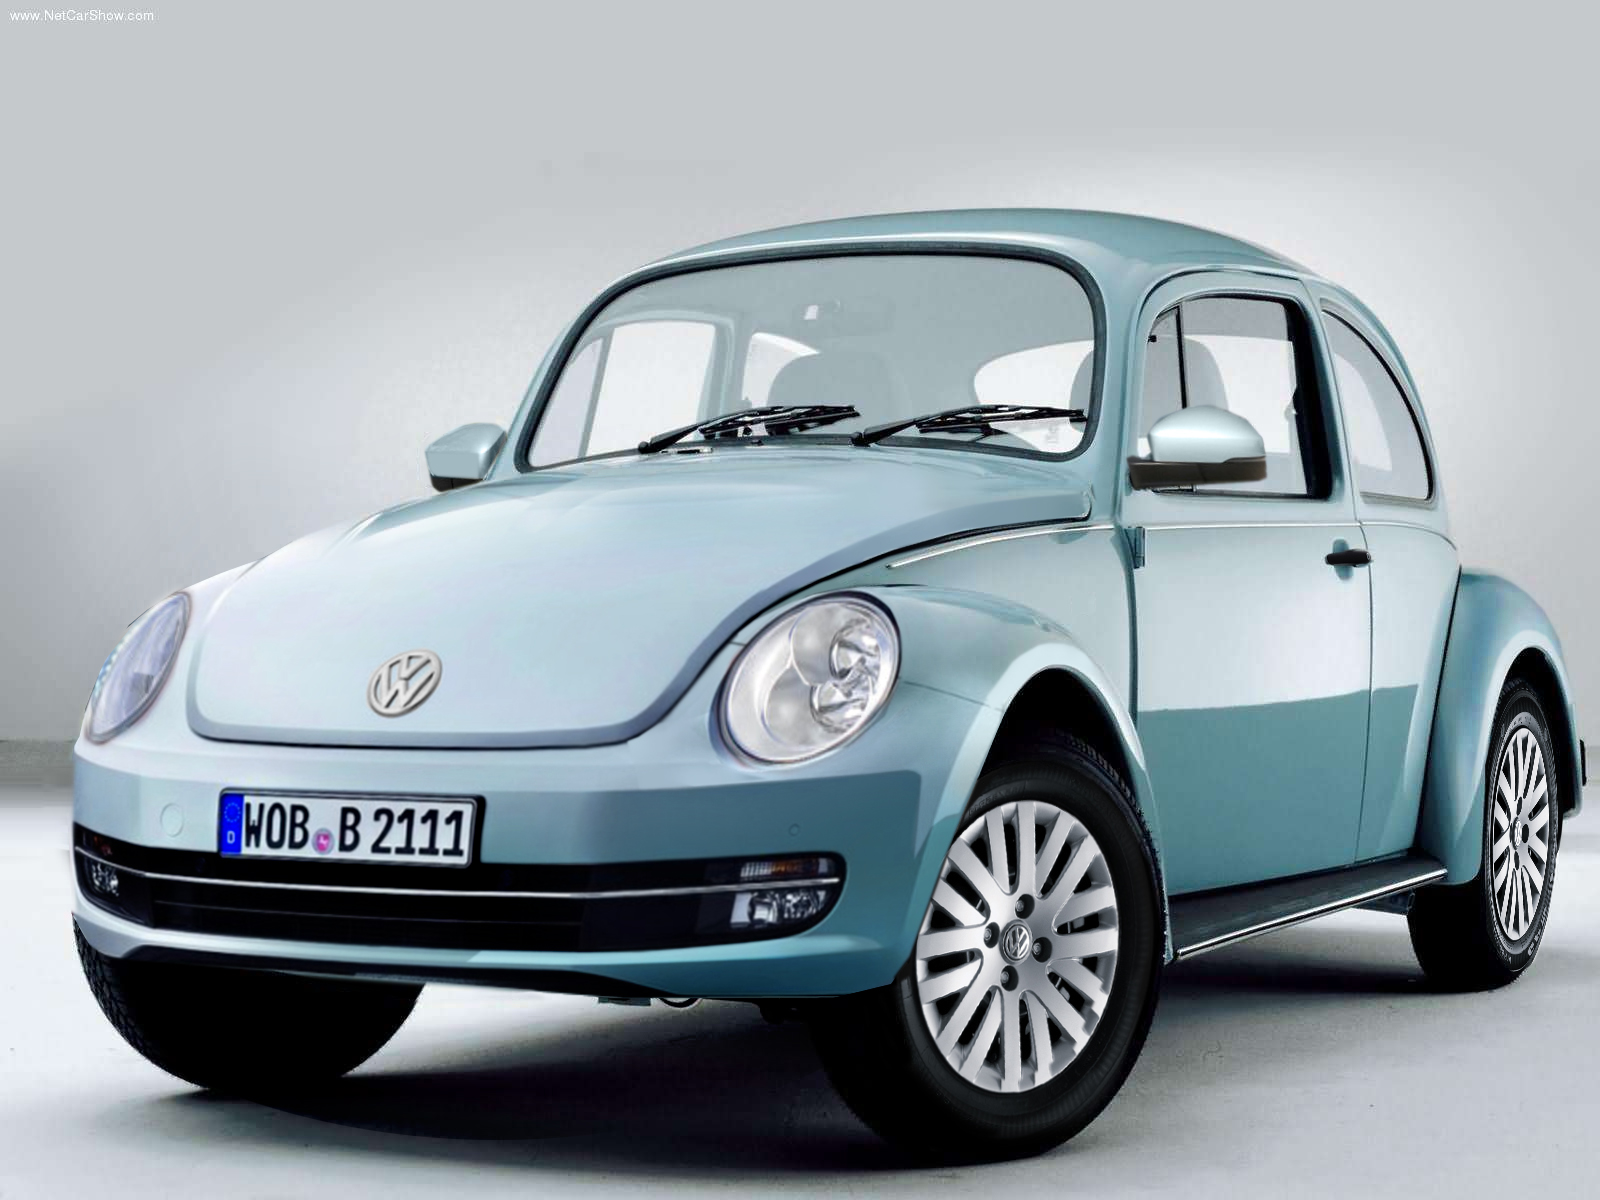 Nuevo Volkswagen Vocho Sedan 2015 together with Writer Brain additionally C ervan likewise Guia Colores Vochos Clasicos further Baby Blue Volkswagen Beetle. on 1985 vw bug interior